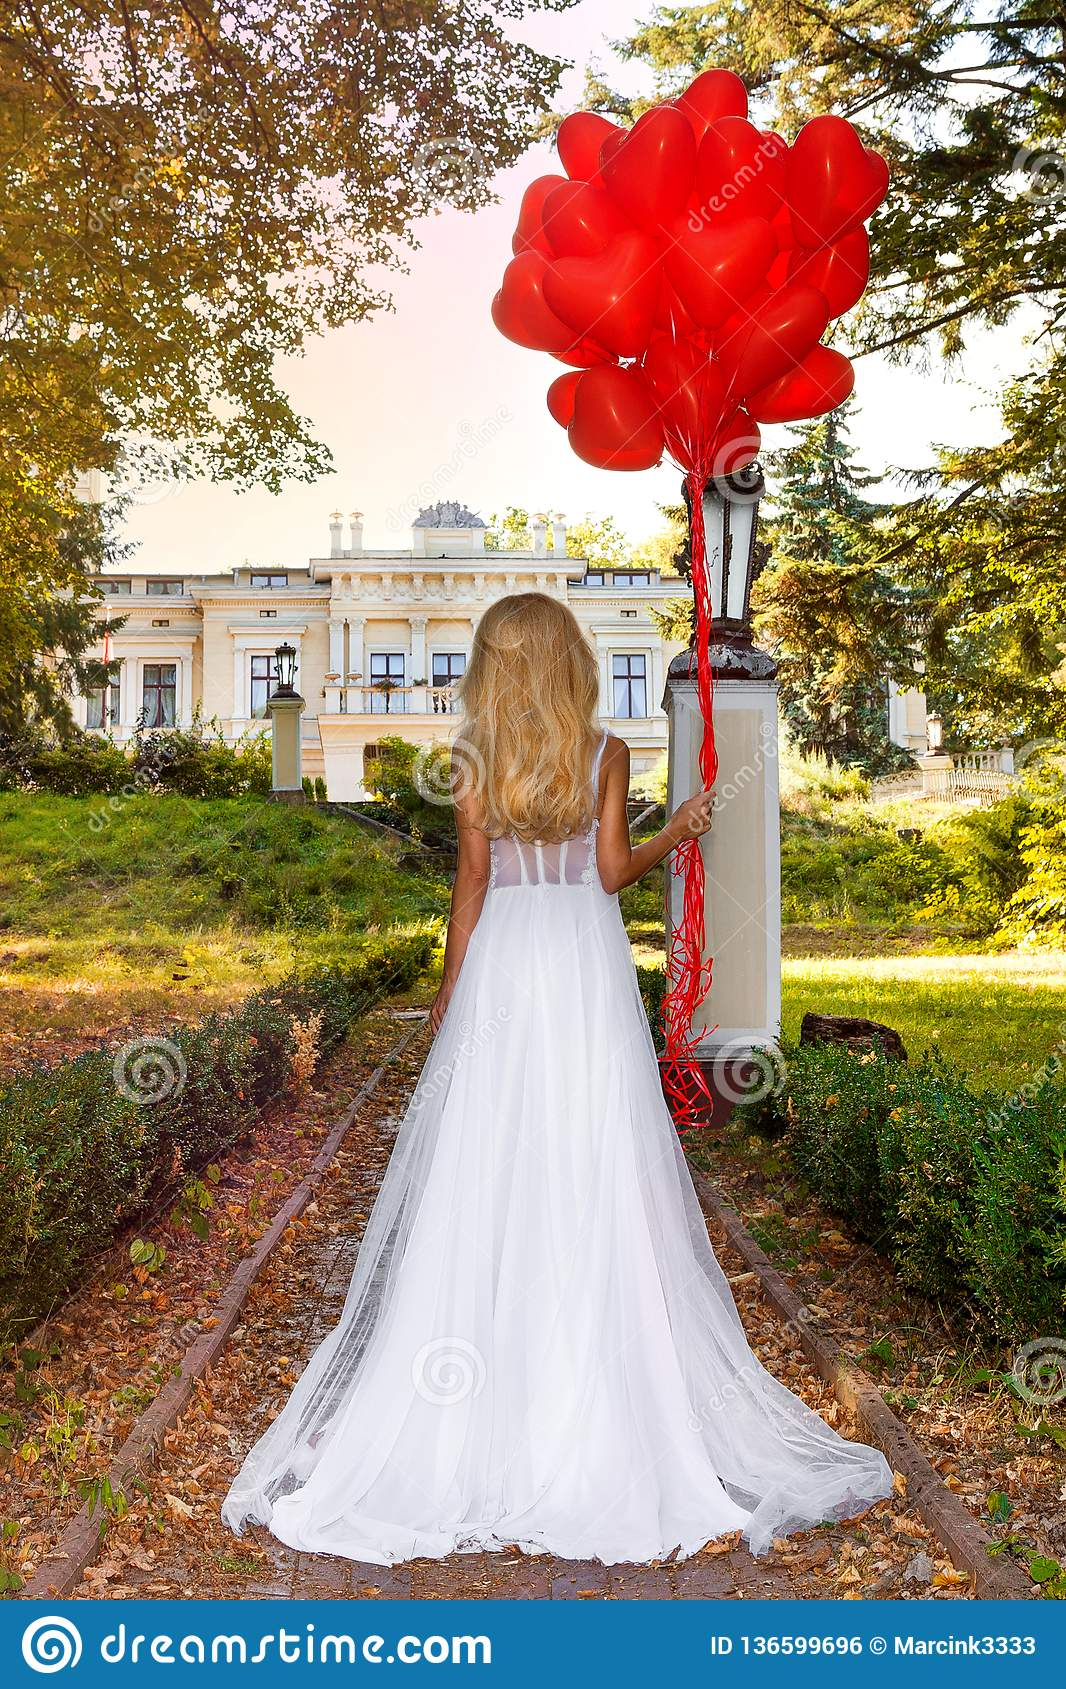 Valentine Beautiful girl with red balloons laugh, in the park. Beautiful happy young woman. Birthday party and bride at the